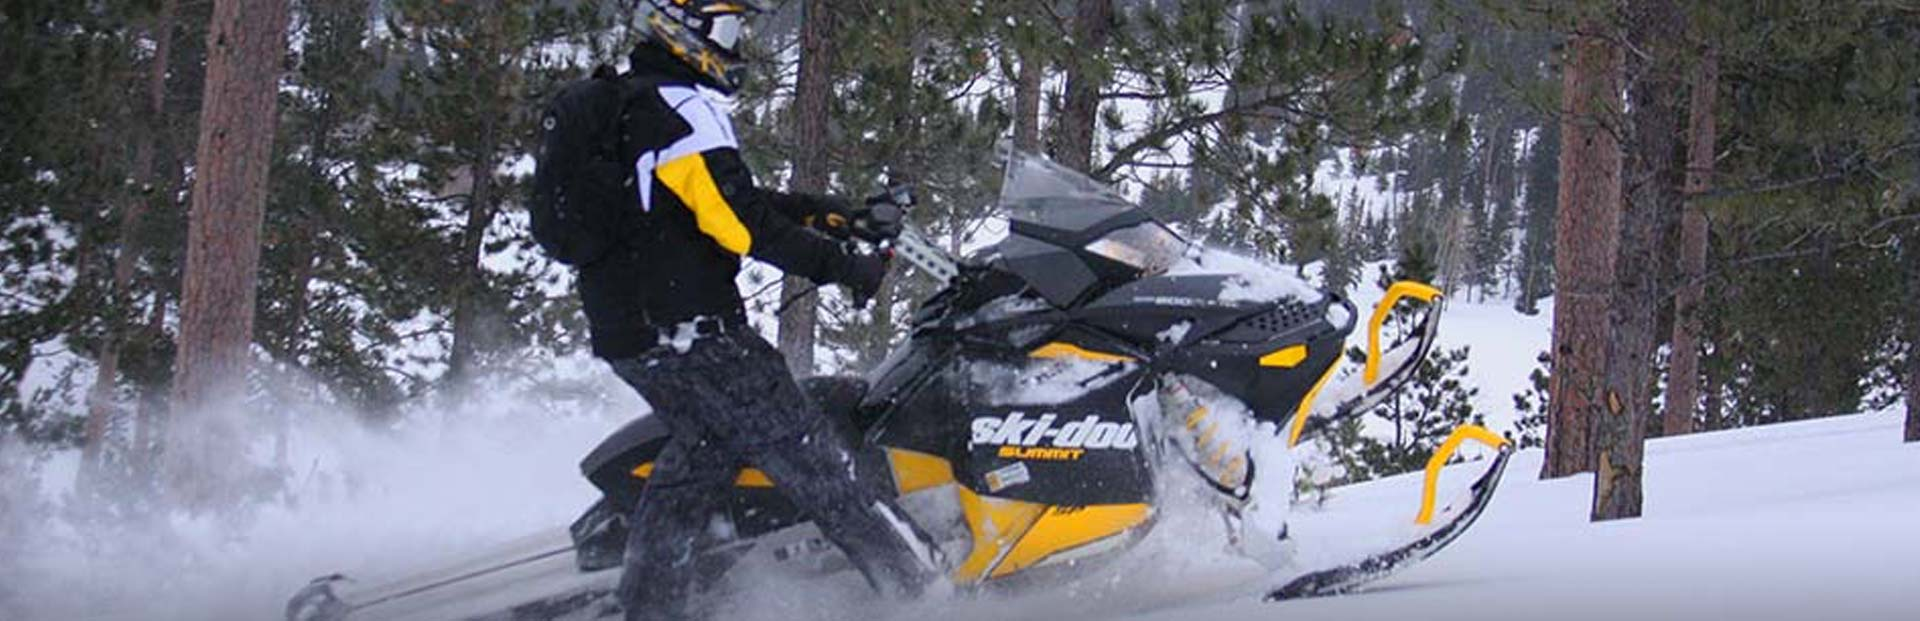 Maine Snowmobiling - Spaulding Lake Outfitters